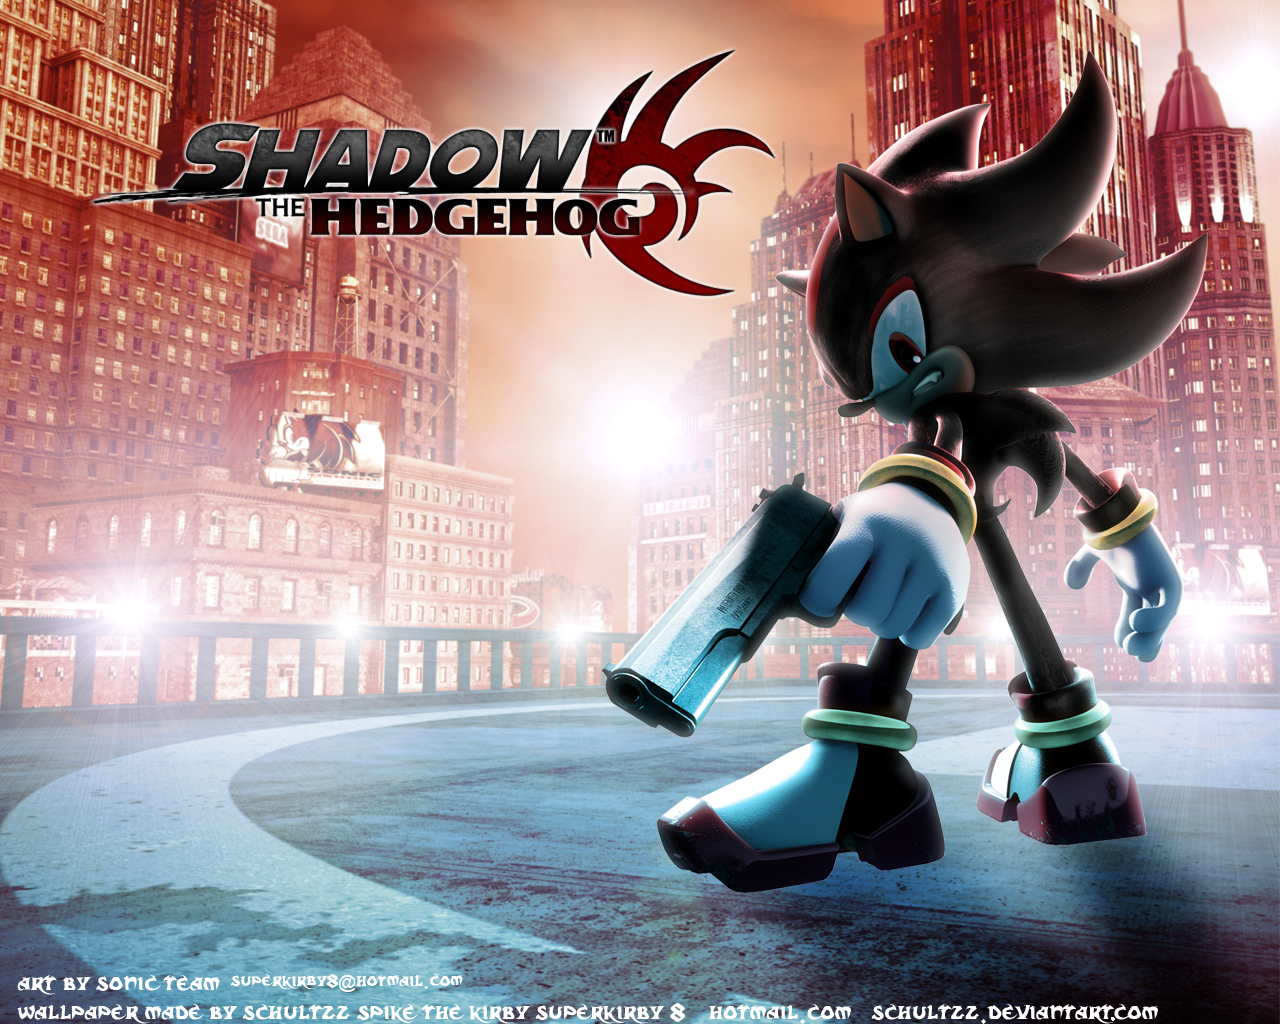 shadow the hedgehog wallpaper by schultzz on DeviantArt